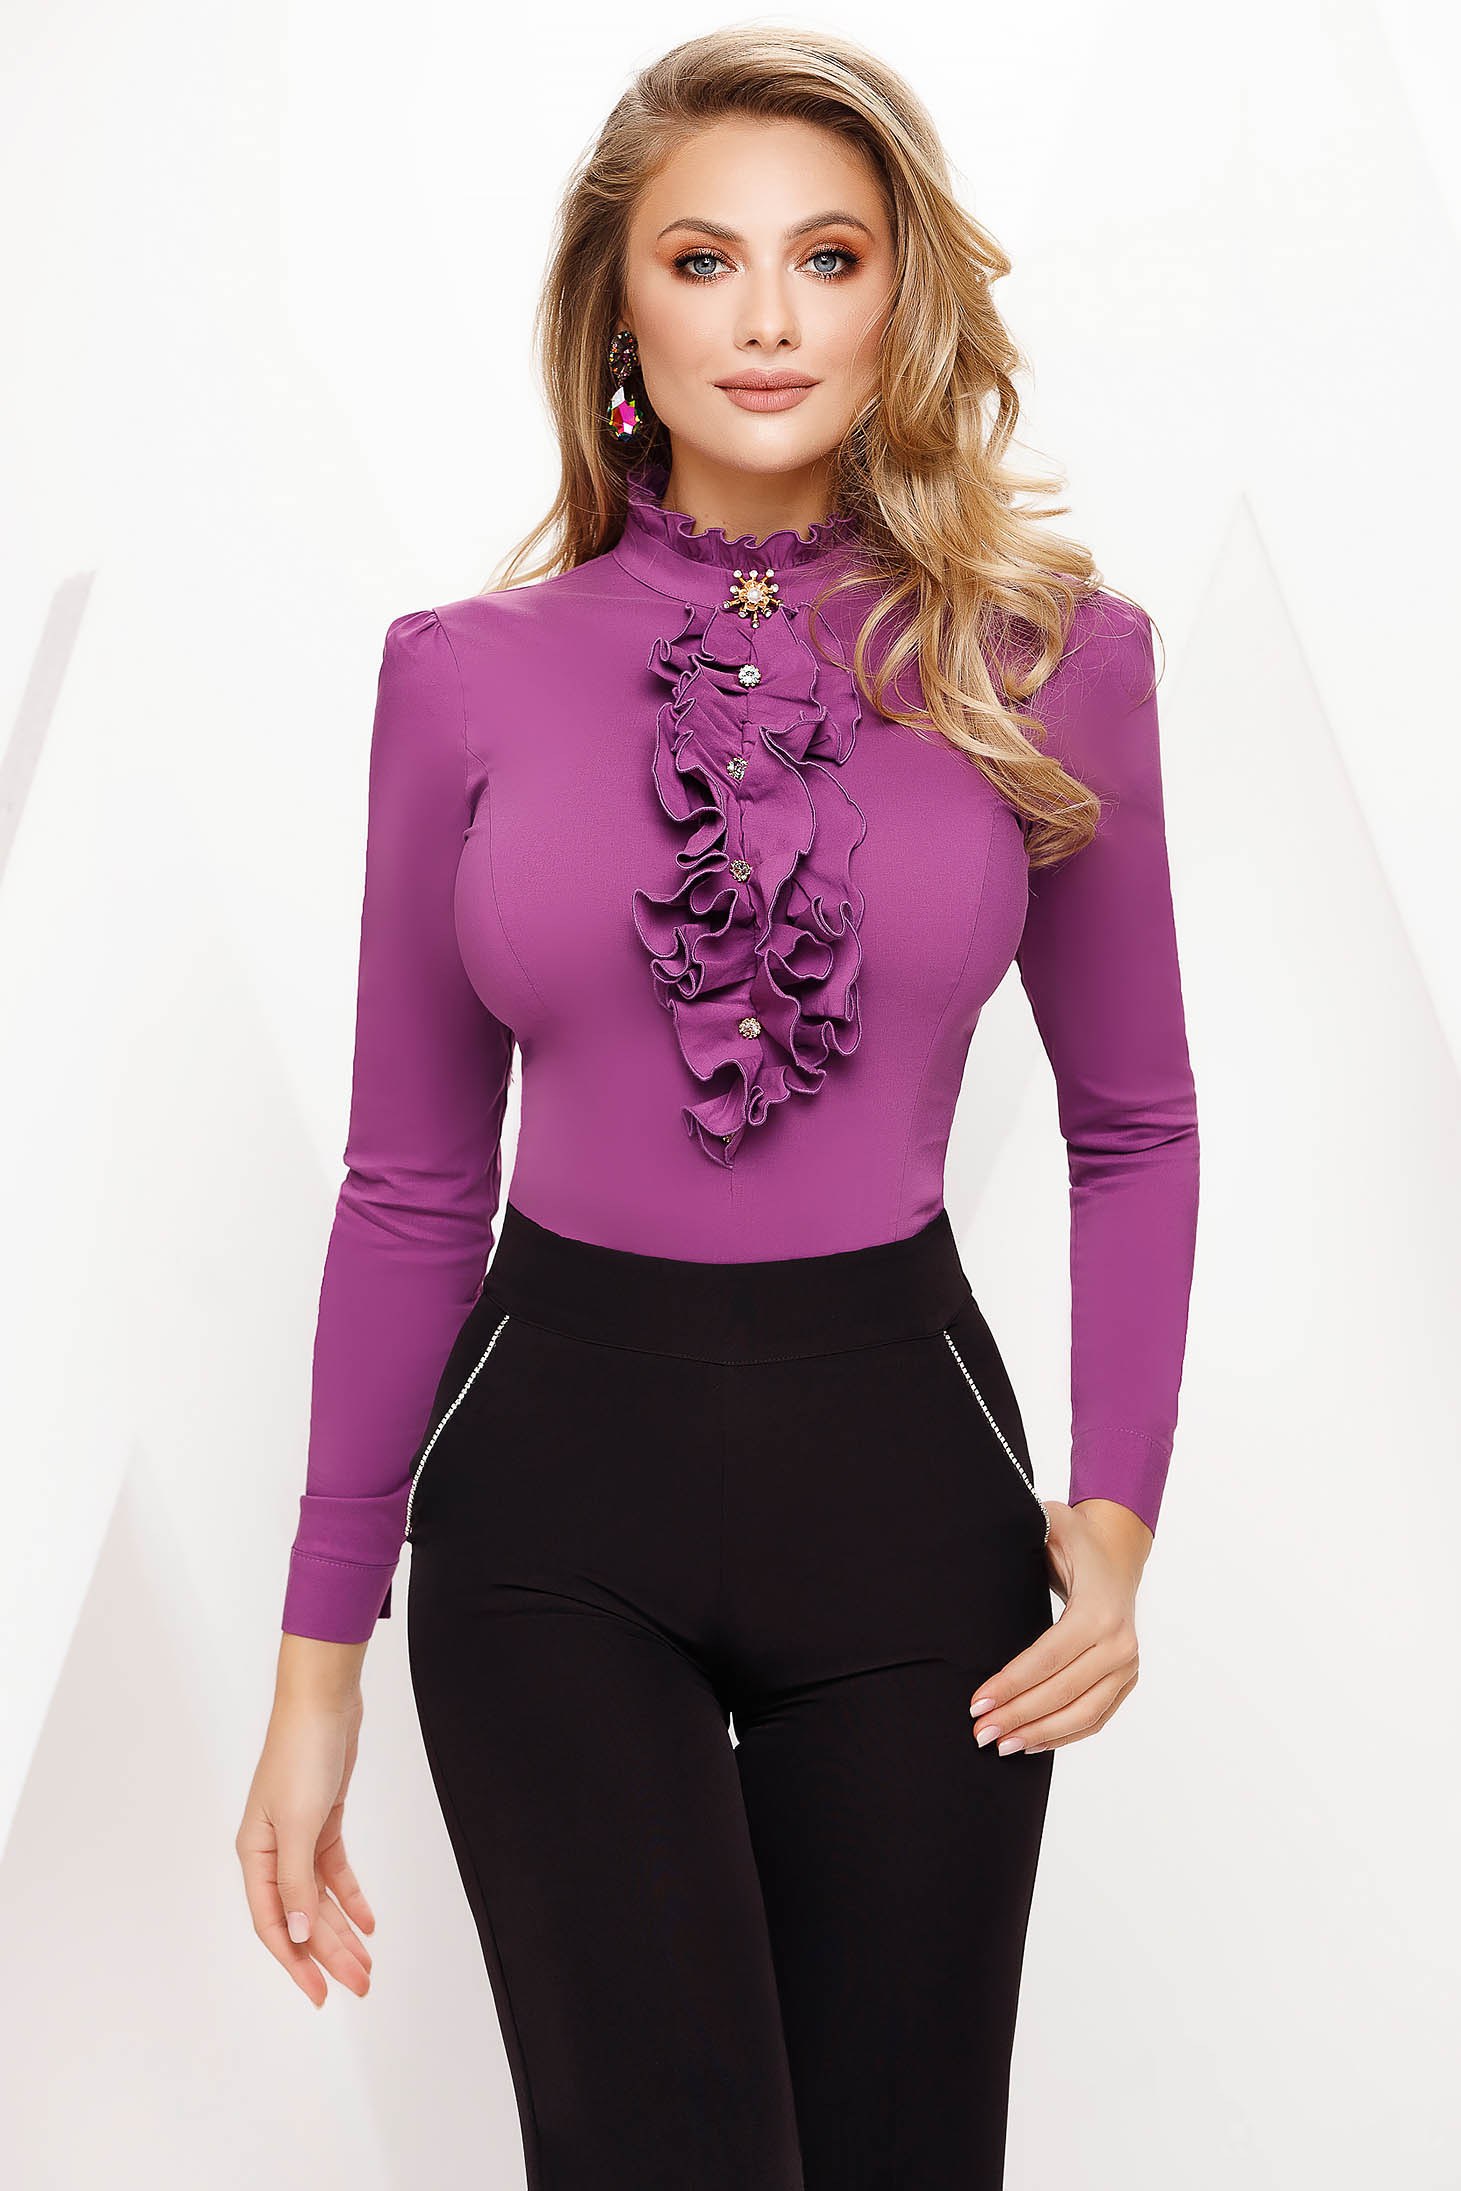 Women`s shirt purple tented office slightly elastic fabric accessorized with breastpin